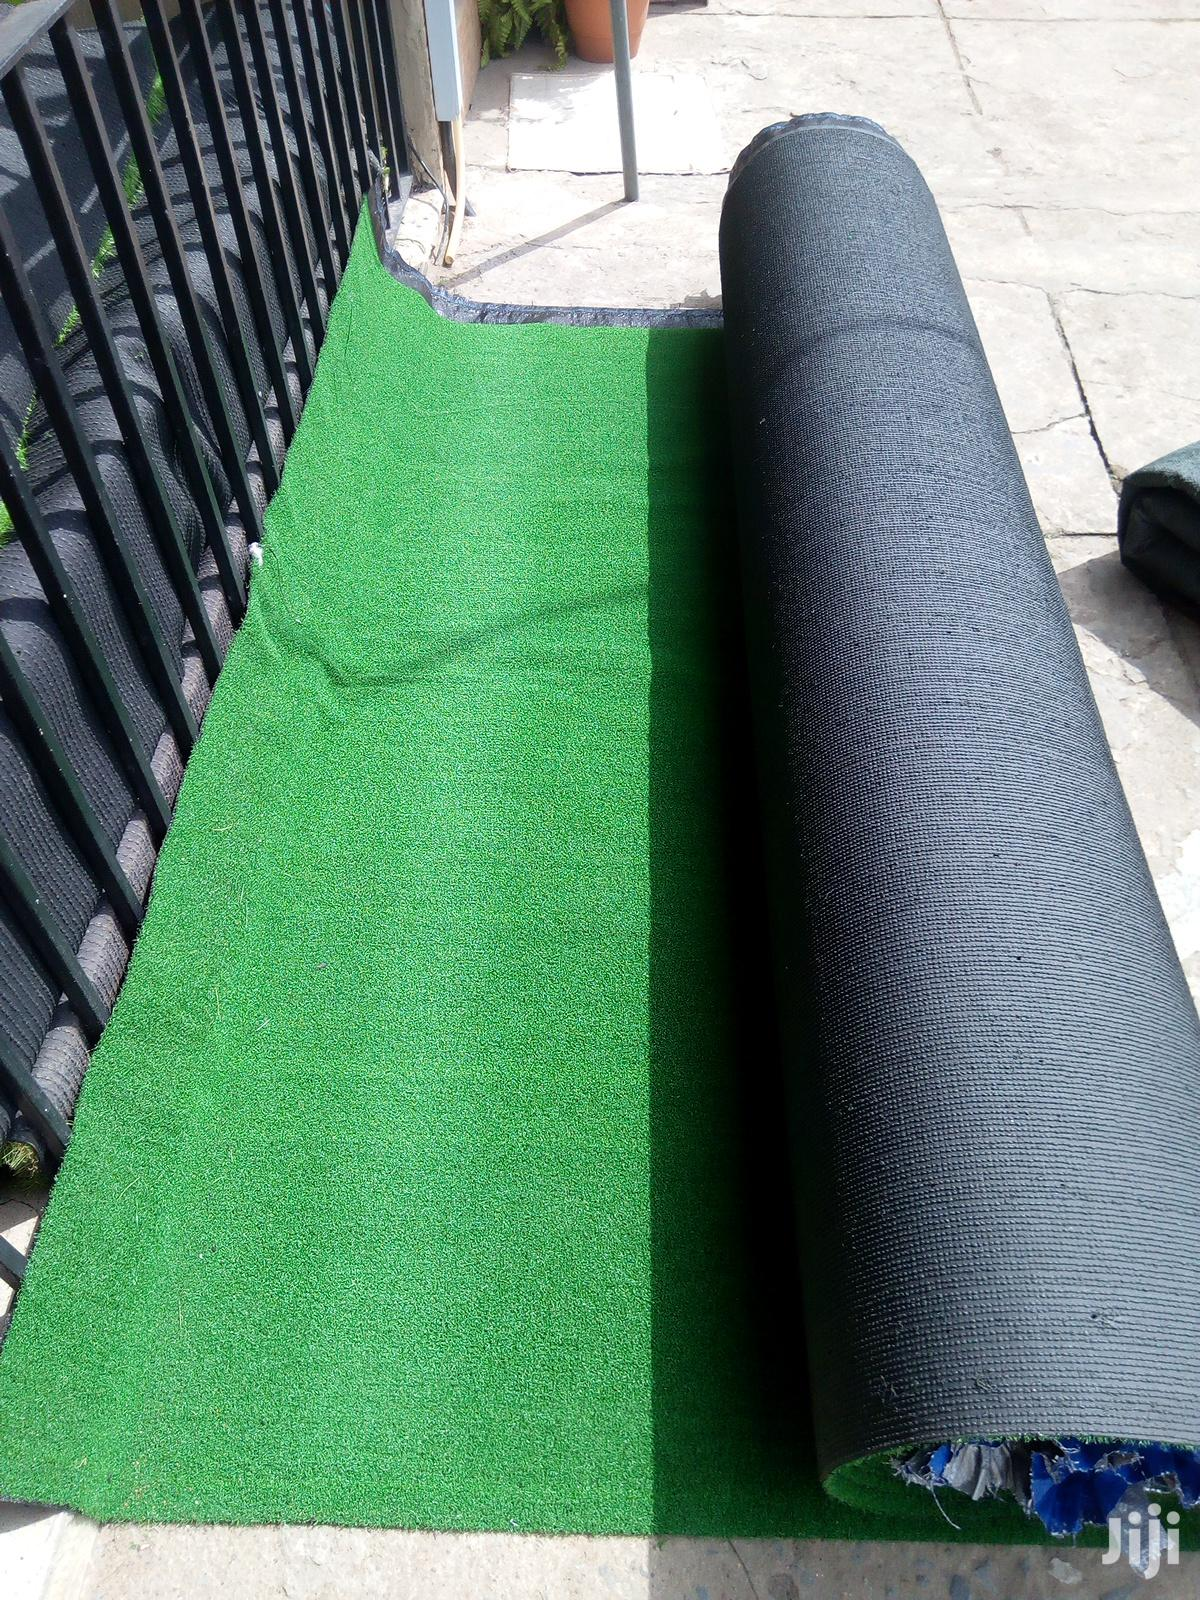 New High Quality Artificial Grass Carpet For Home/Garden/Indoor/Outdoor. | Garden for sale in Ikeja, Lagos State, Nigeria